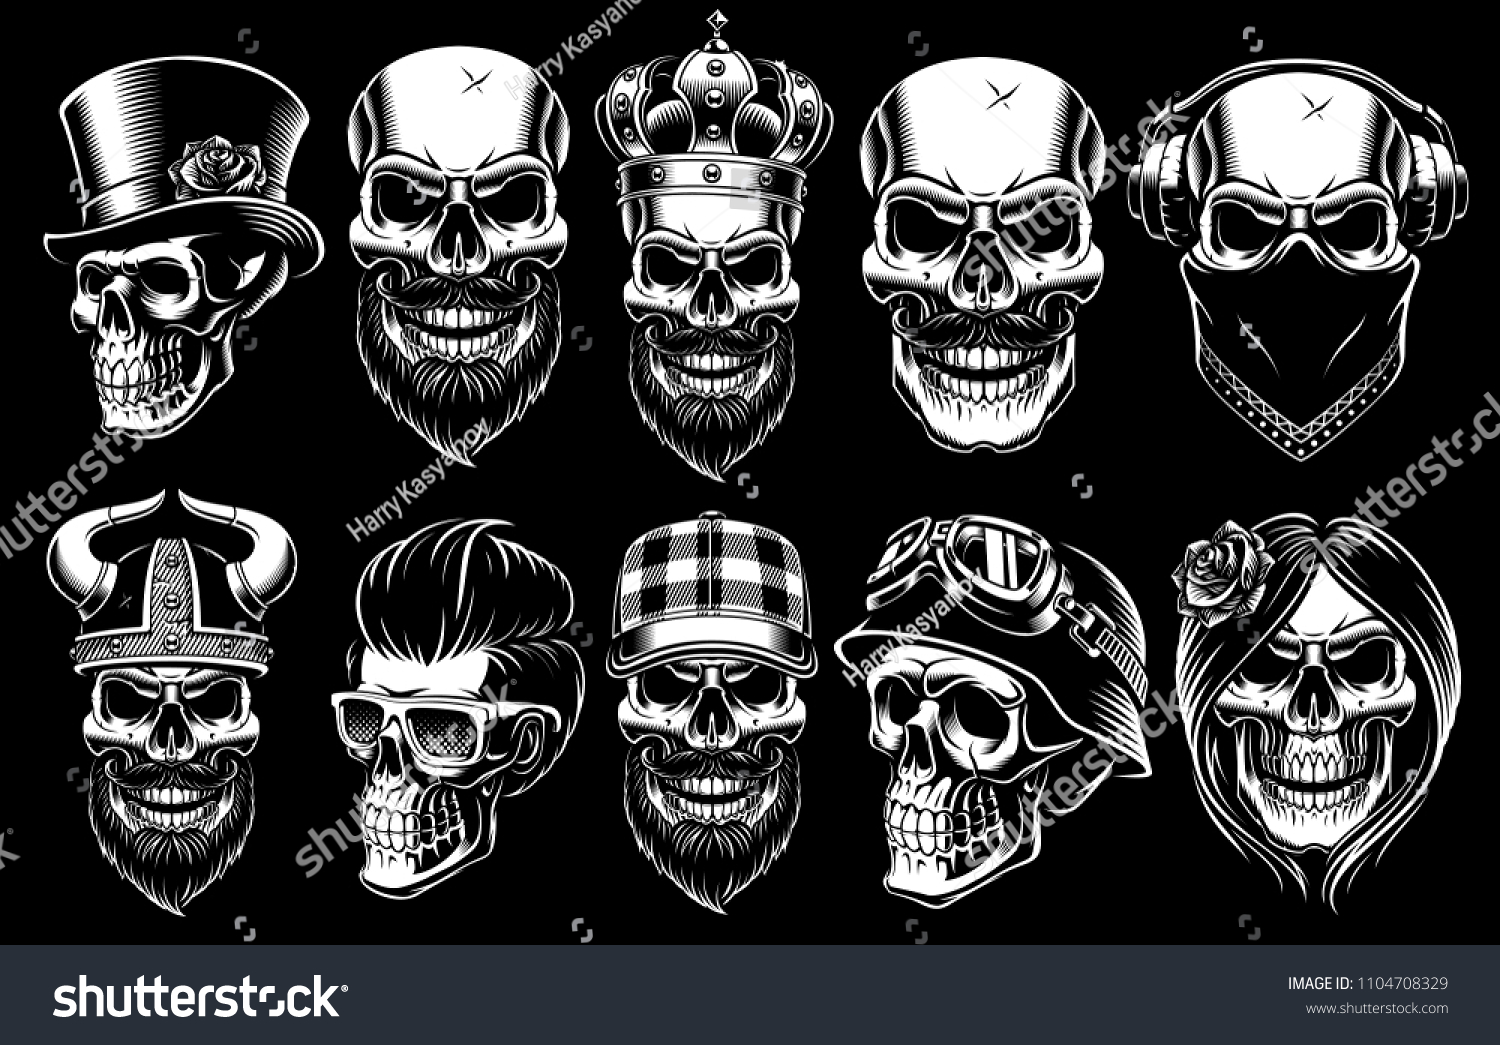 Set of different skulls shirt designs badges stickers with viking king gentleman barber biker and other isolated black and white illustrations